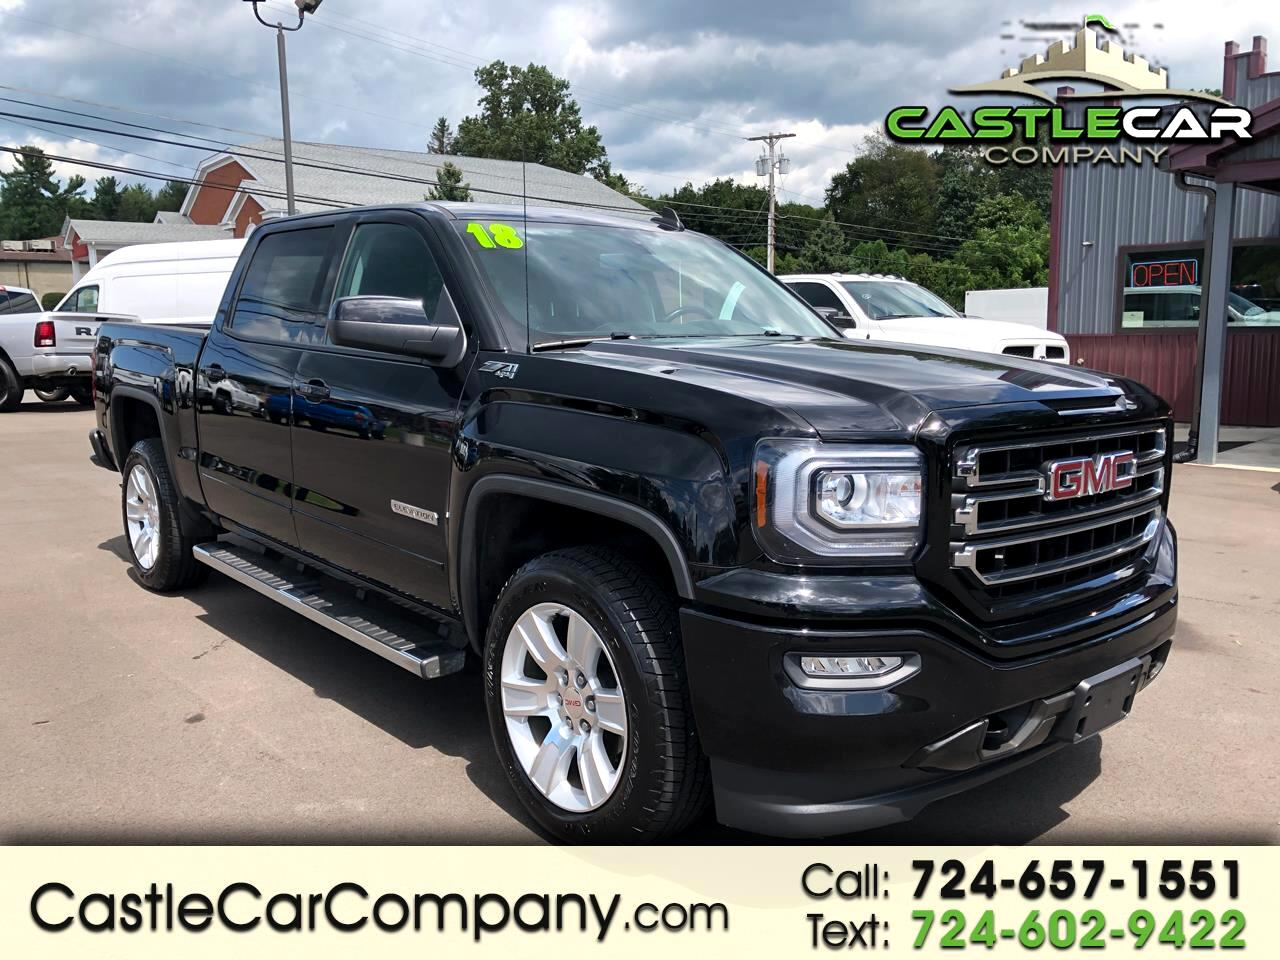 2018 GMC Sierra 1500 4WD CREW CAB ELEVATION